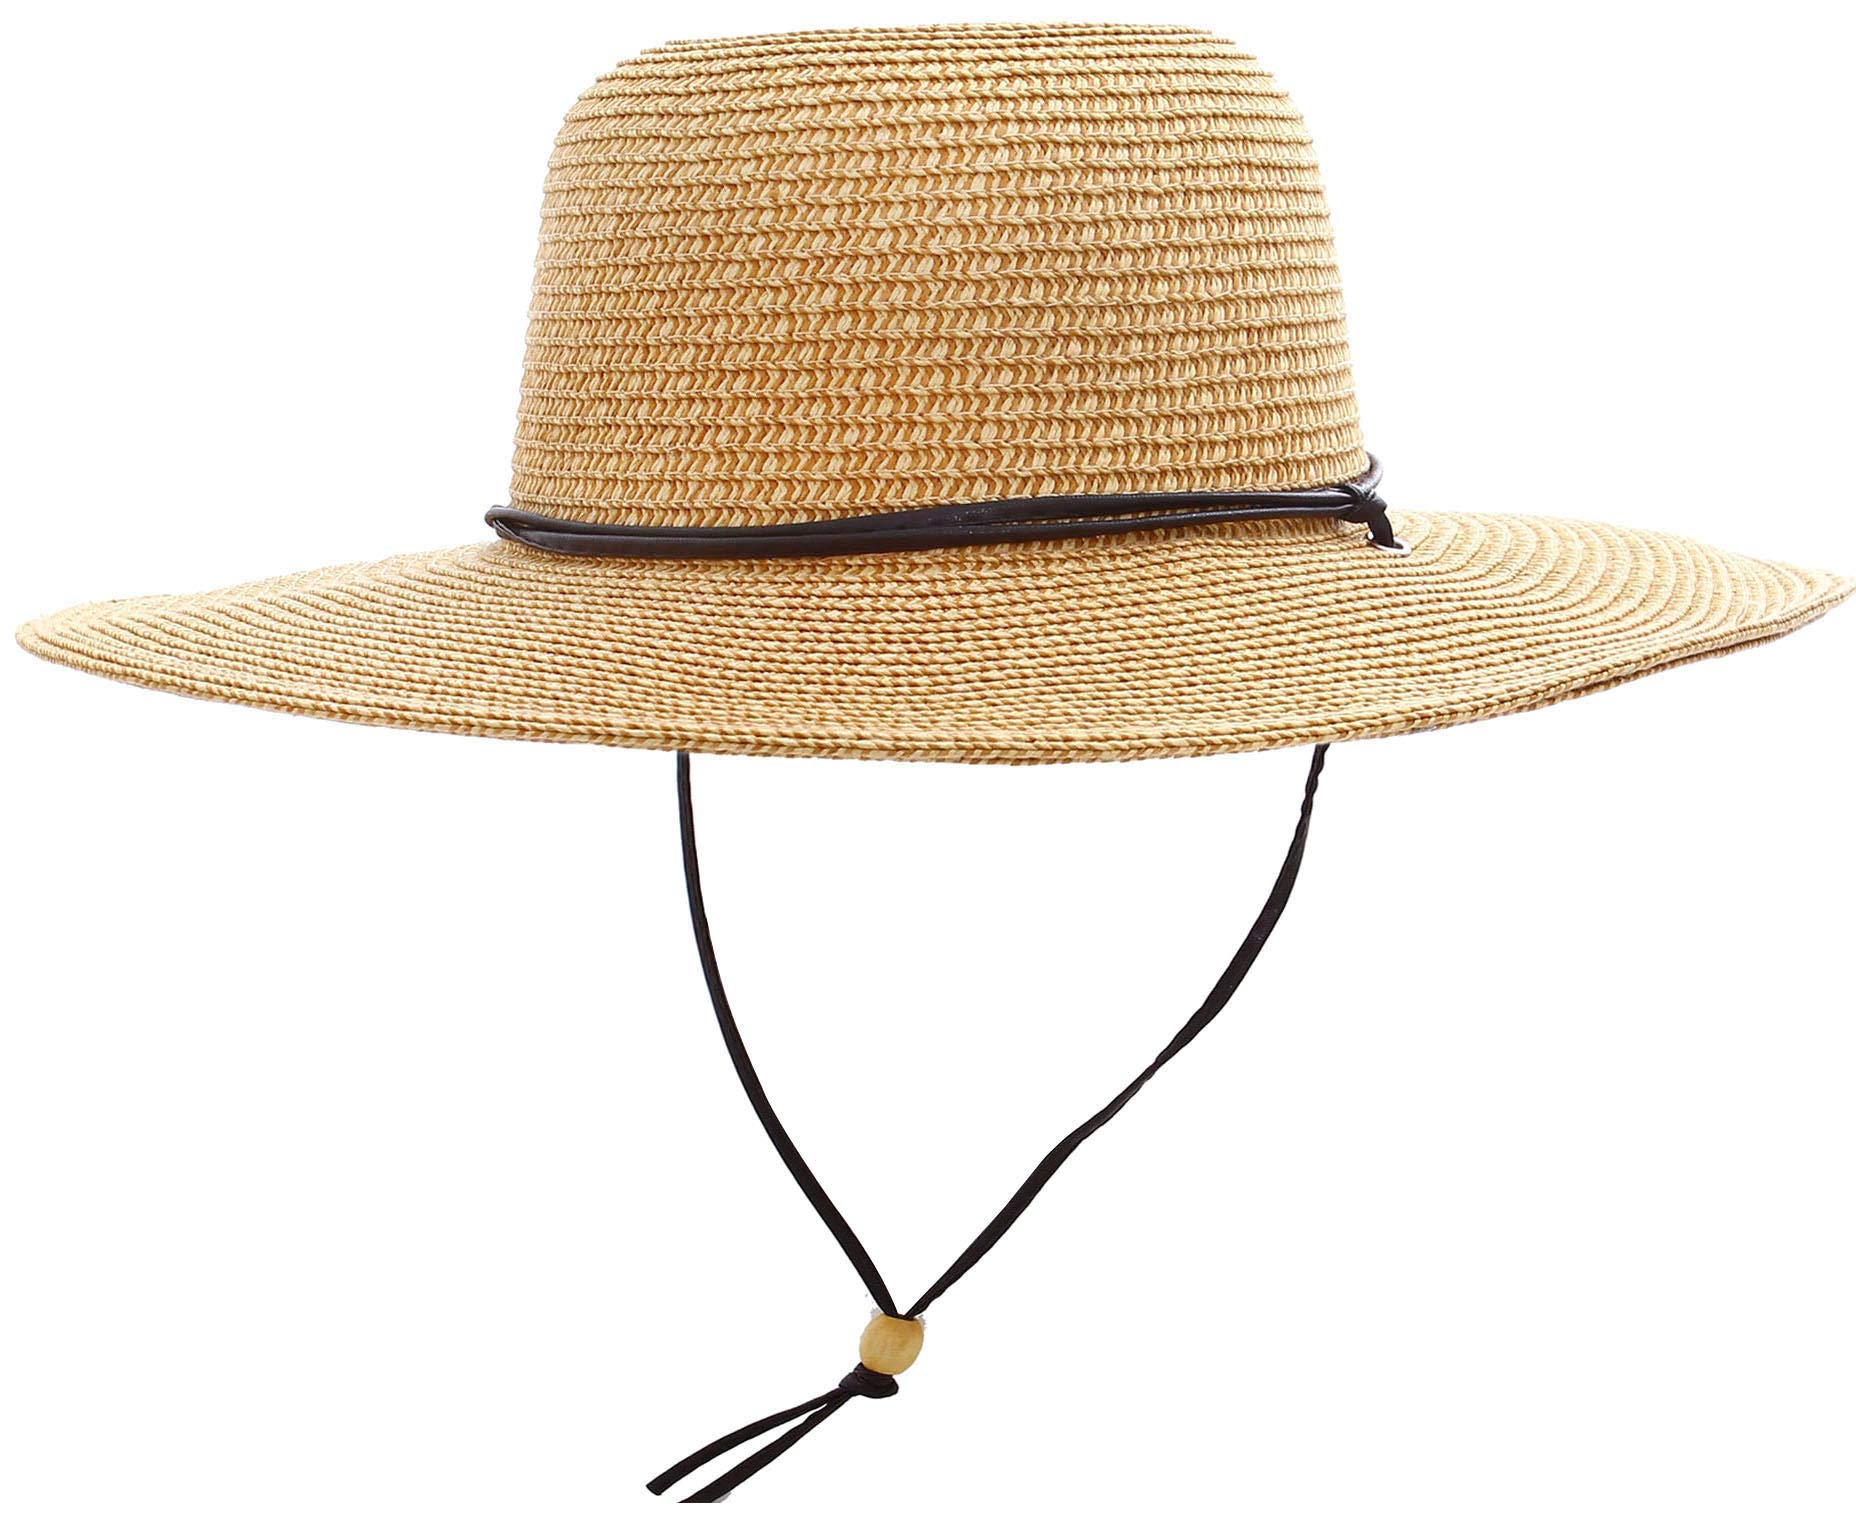 Women's UPF 50+ Wide Brim Braided Straw Sun Hat with Lanyard Natural-Brown by Simplicity